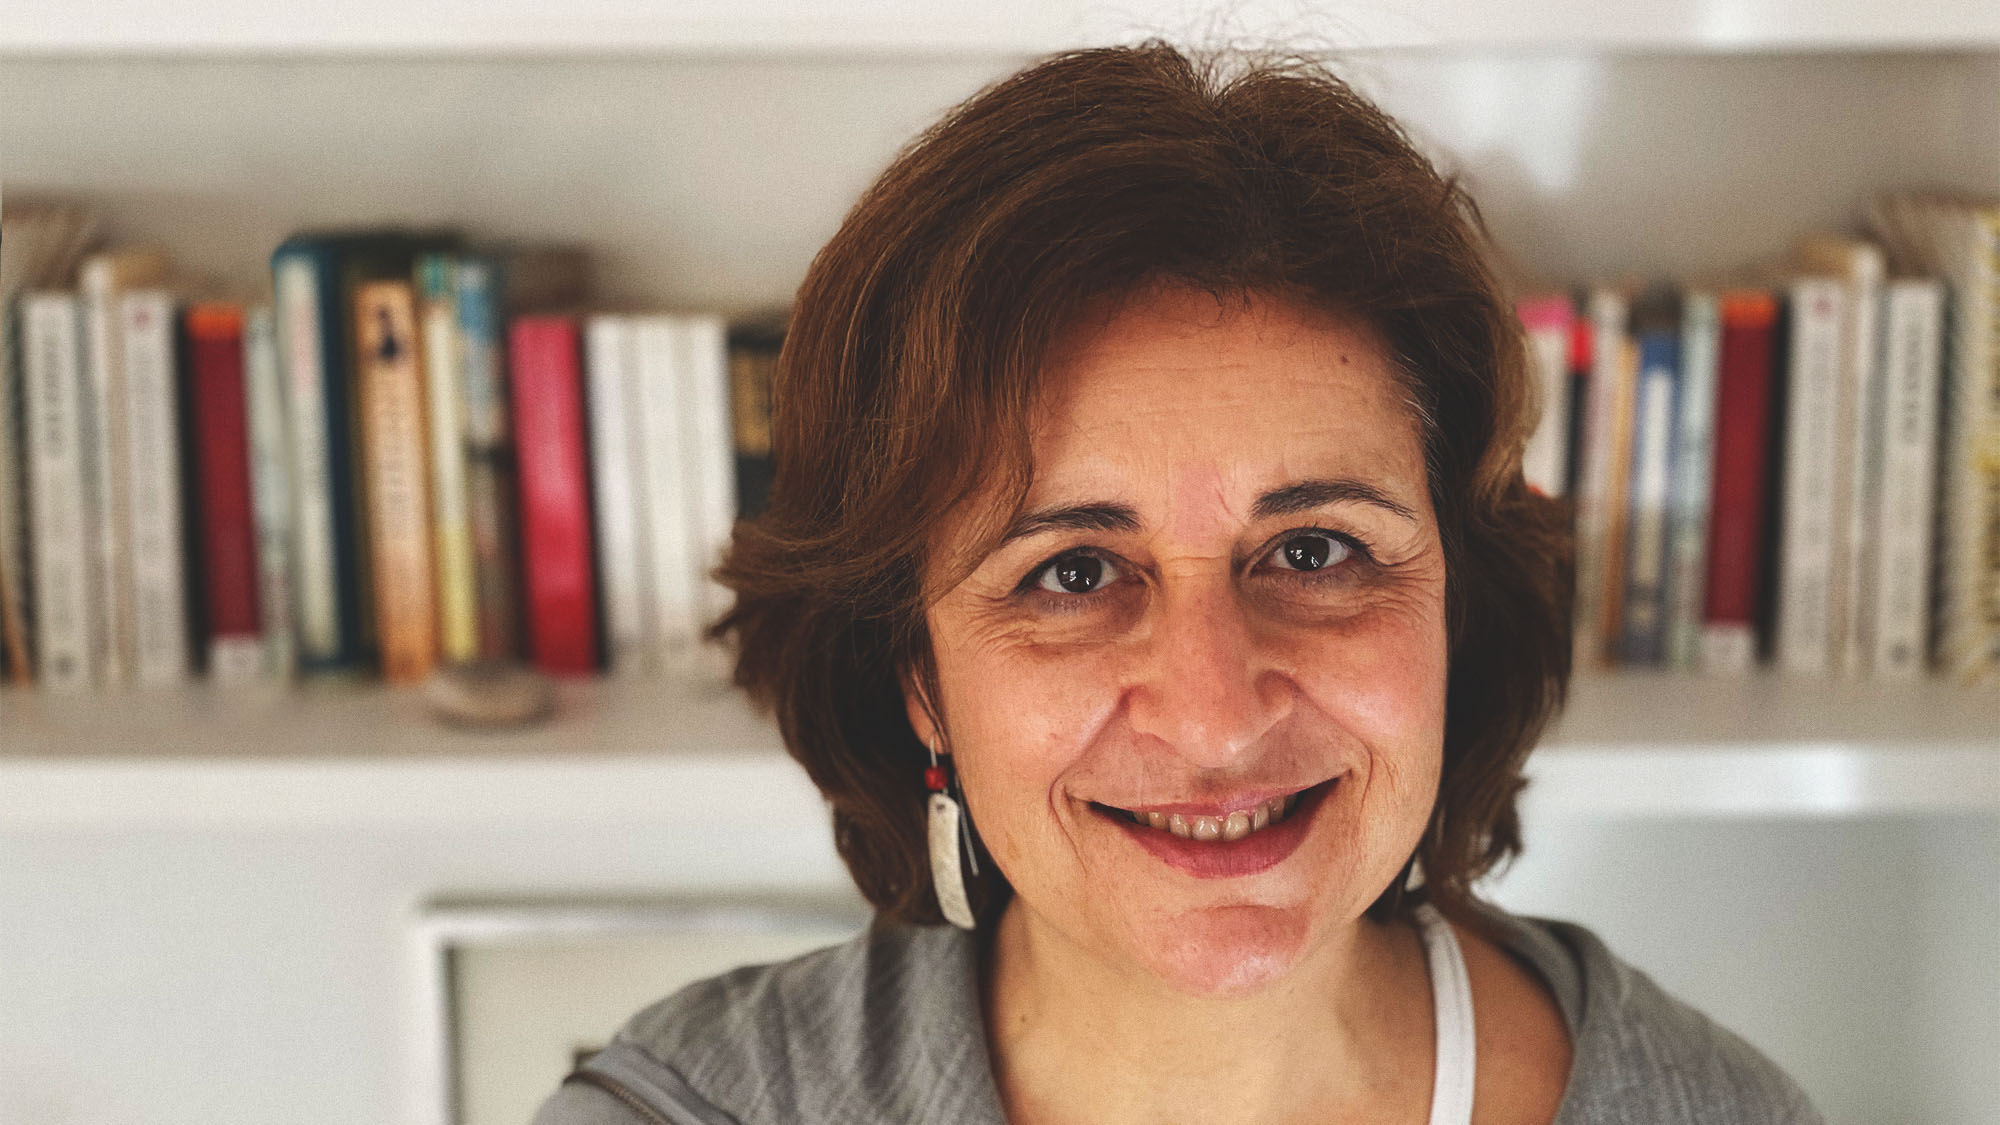 """Juana Díez (DCEXS-UPF): """"We offer scientific reports that help make informed decisions about health policies"""""""